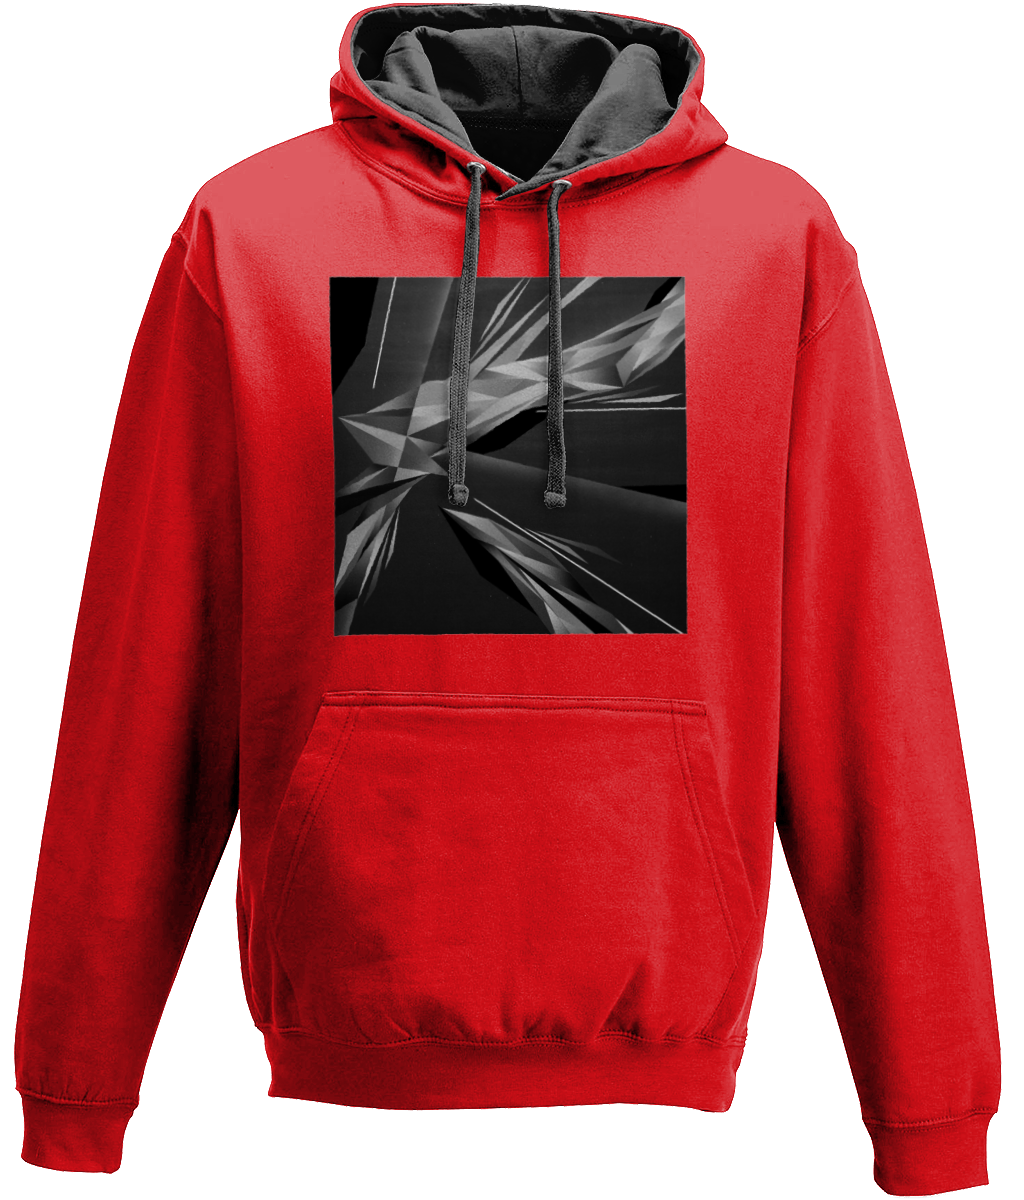 #ArtIt- urban artwear making streetwear out of contemporary art: A. Platkovsky red hoodie delivered print on demand